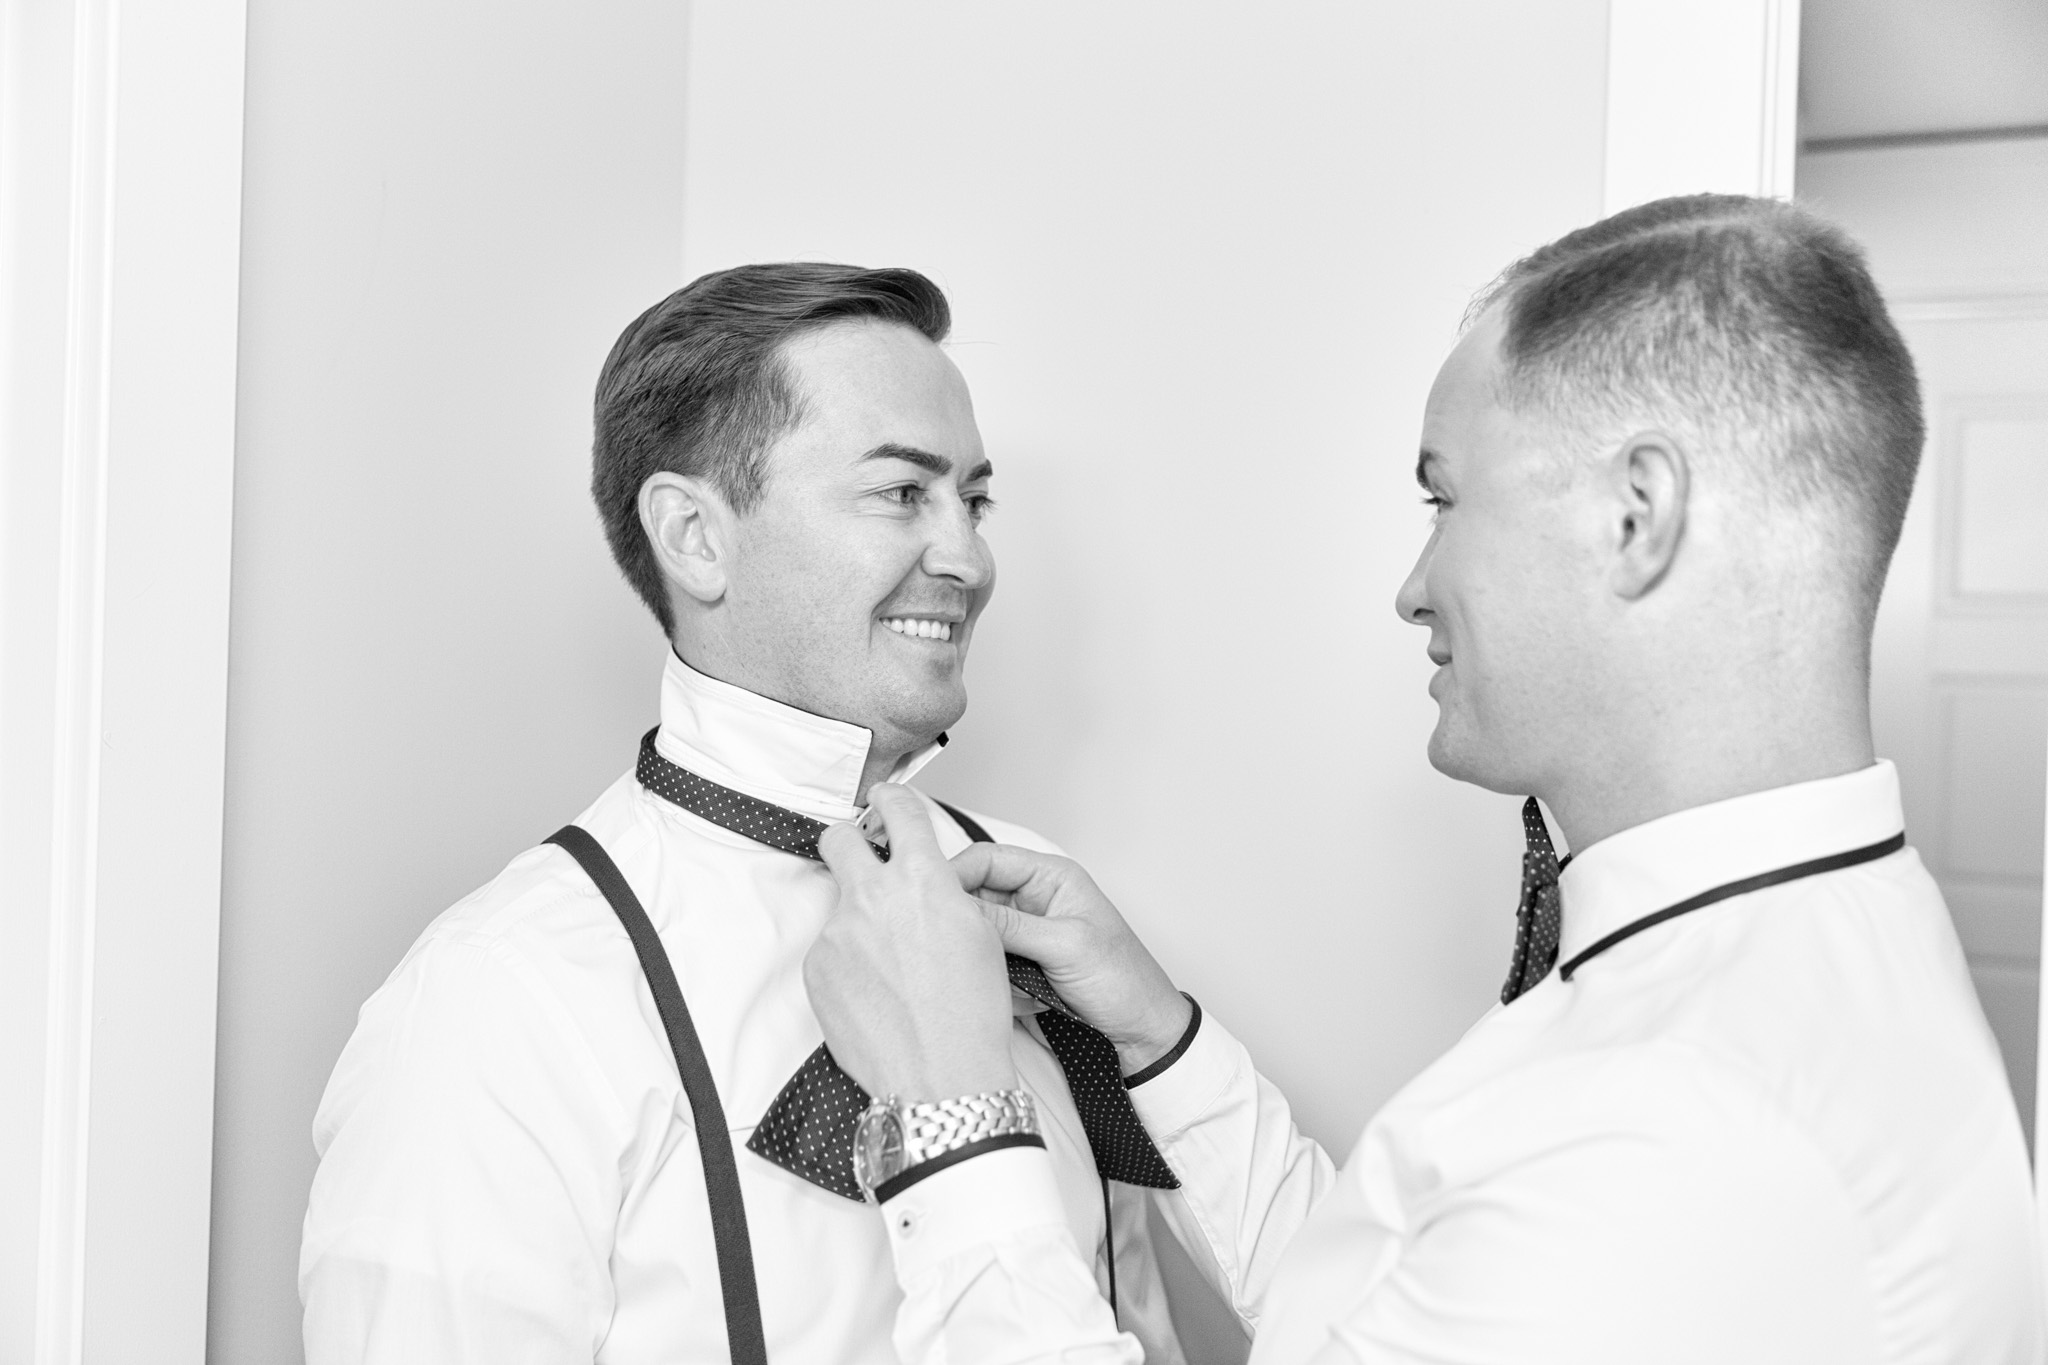 Tying the bow ties